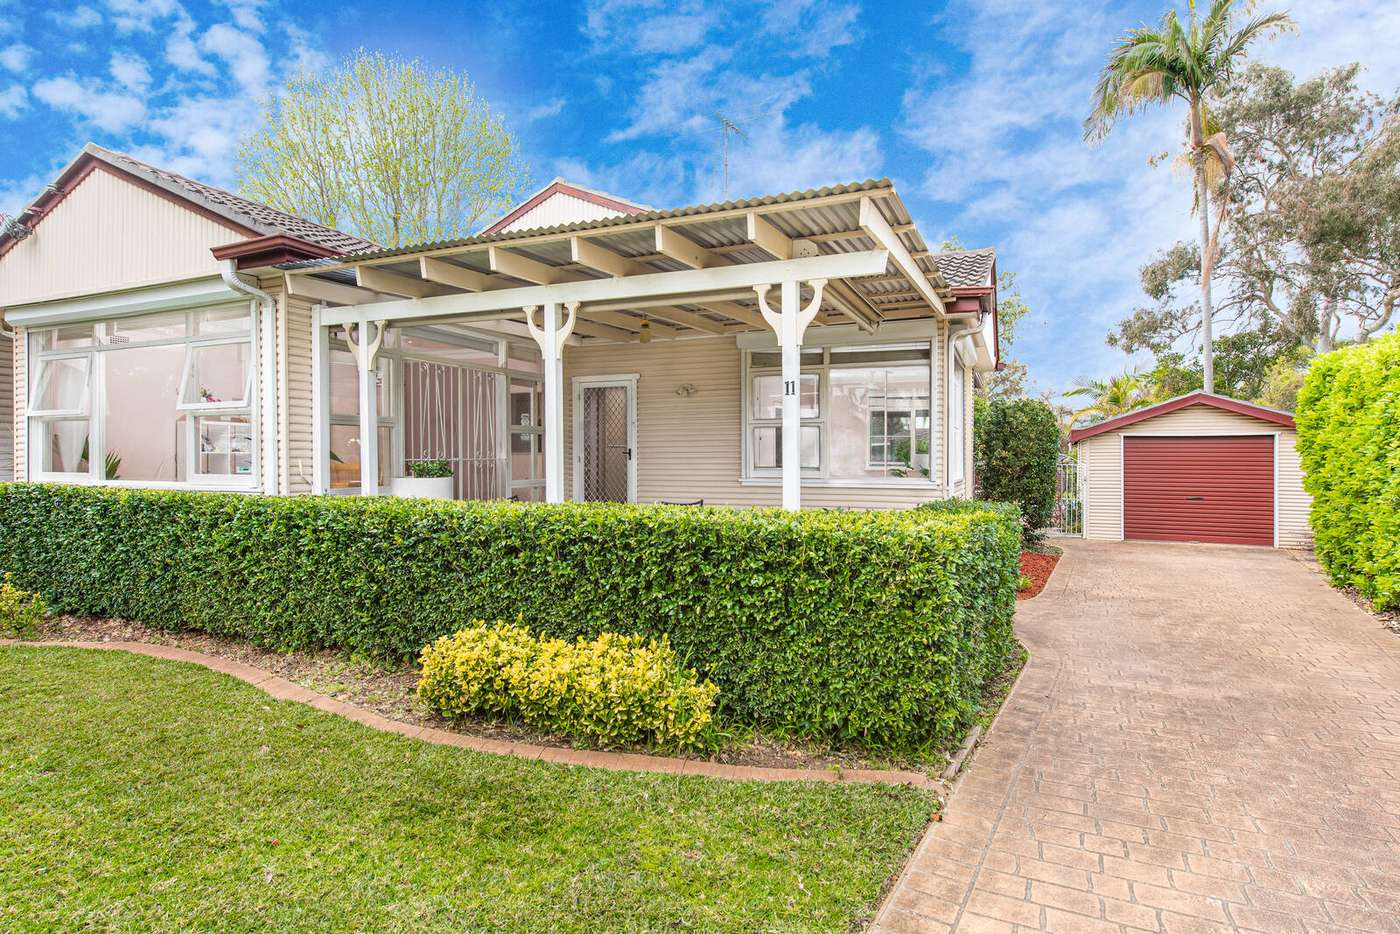 Main view of Homely house listing, 11 Attard Avenue, Marayong NSW 2148